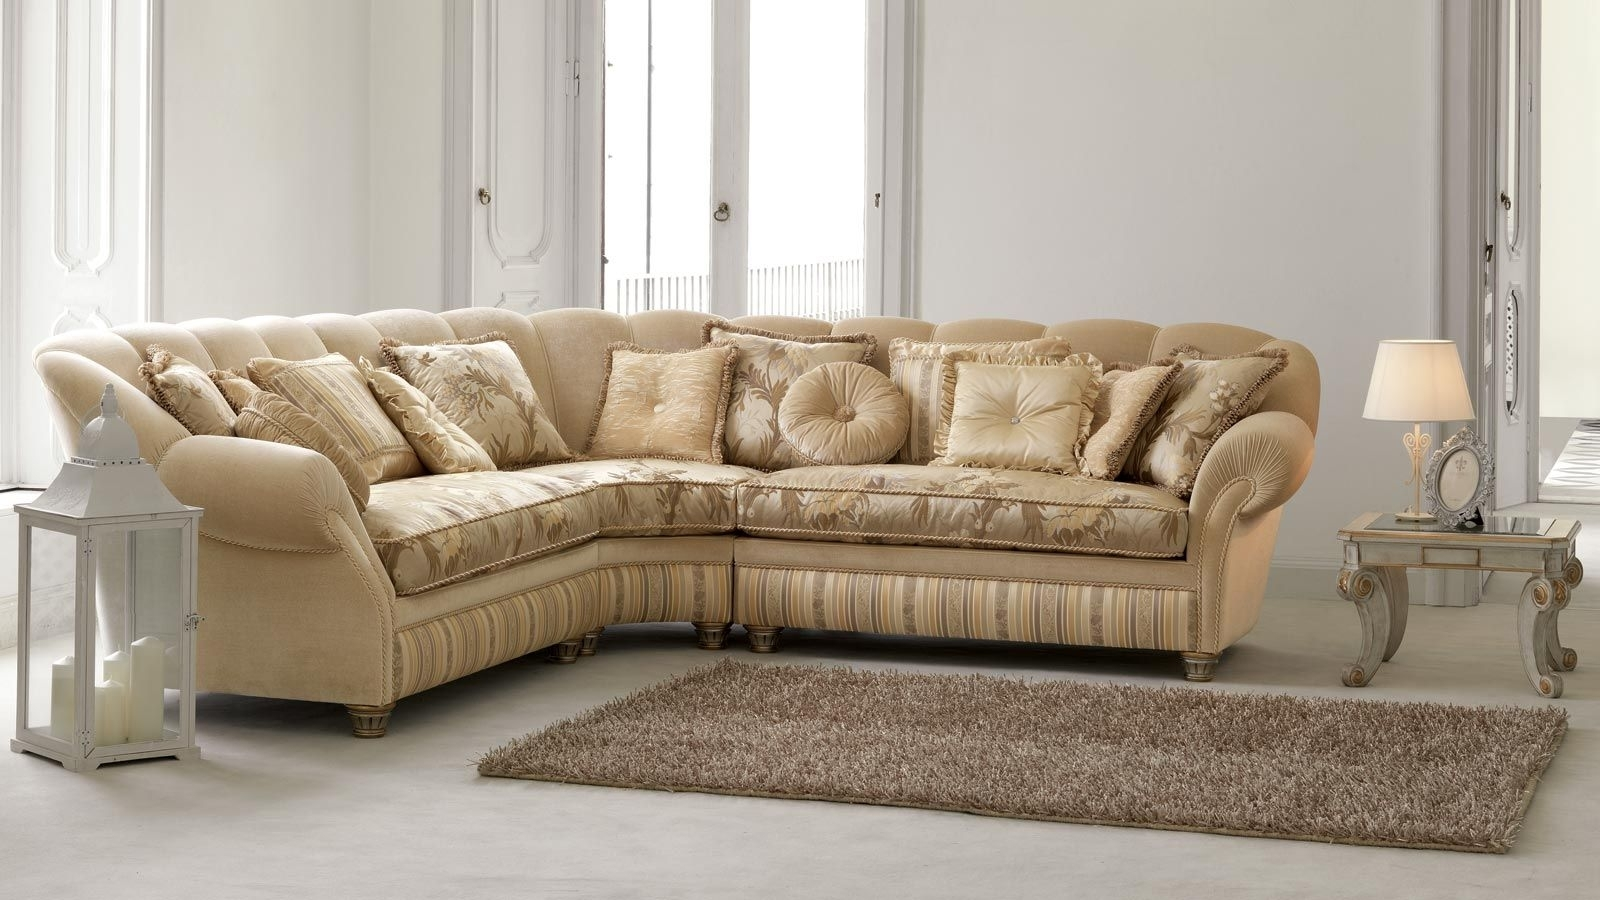 Furniture : Sectional Sofa 80 X 80 Corner Sofa Extension Sectional Intended For Erie Pa Sectional Sofas (View 8 of 10)